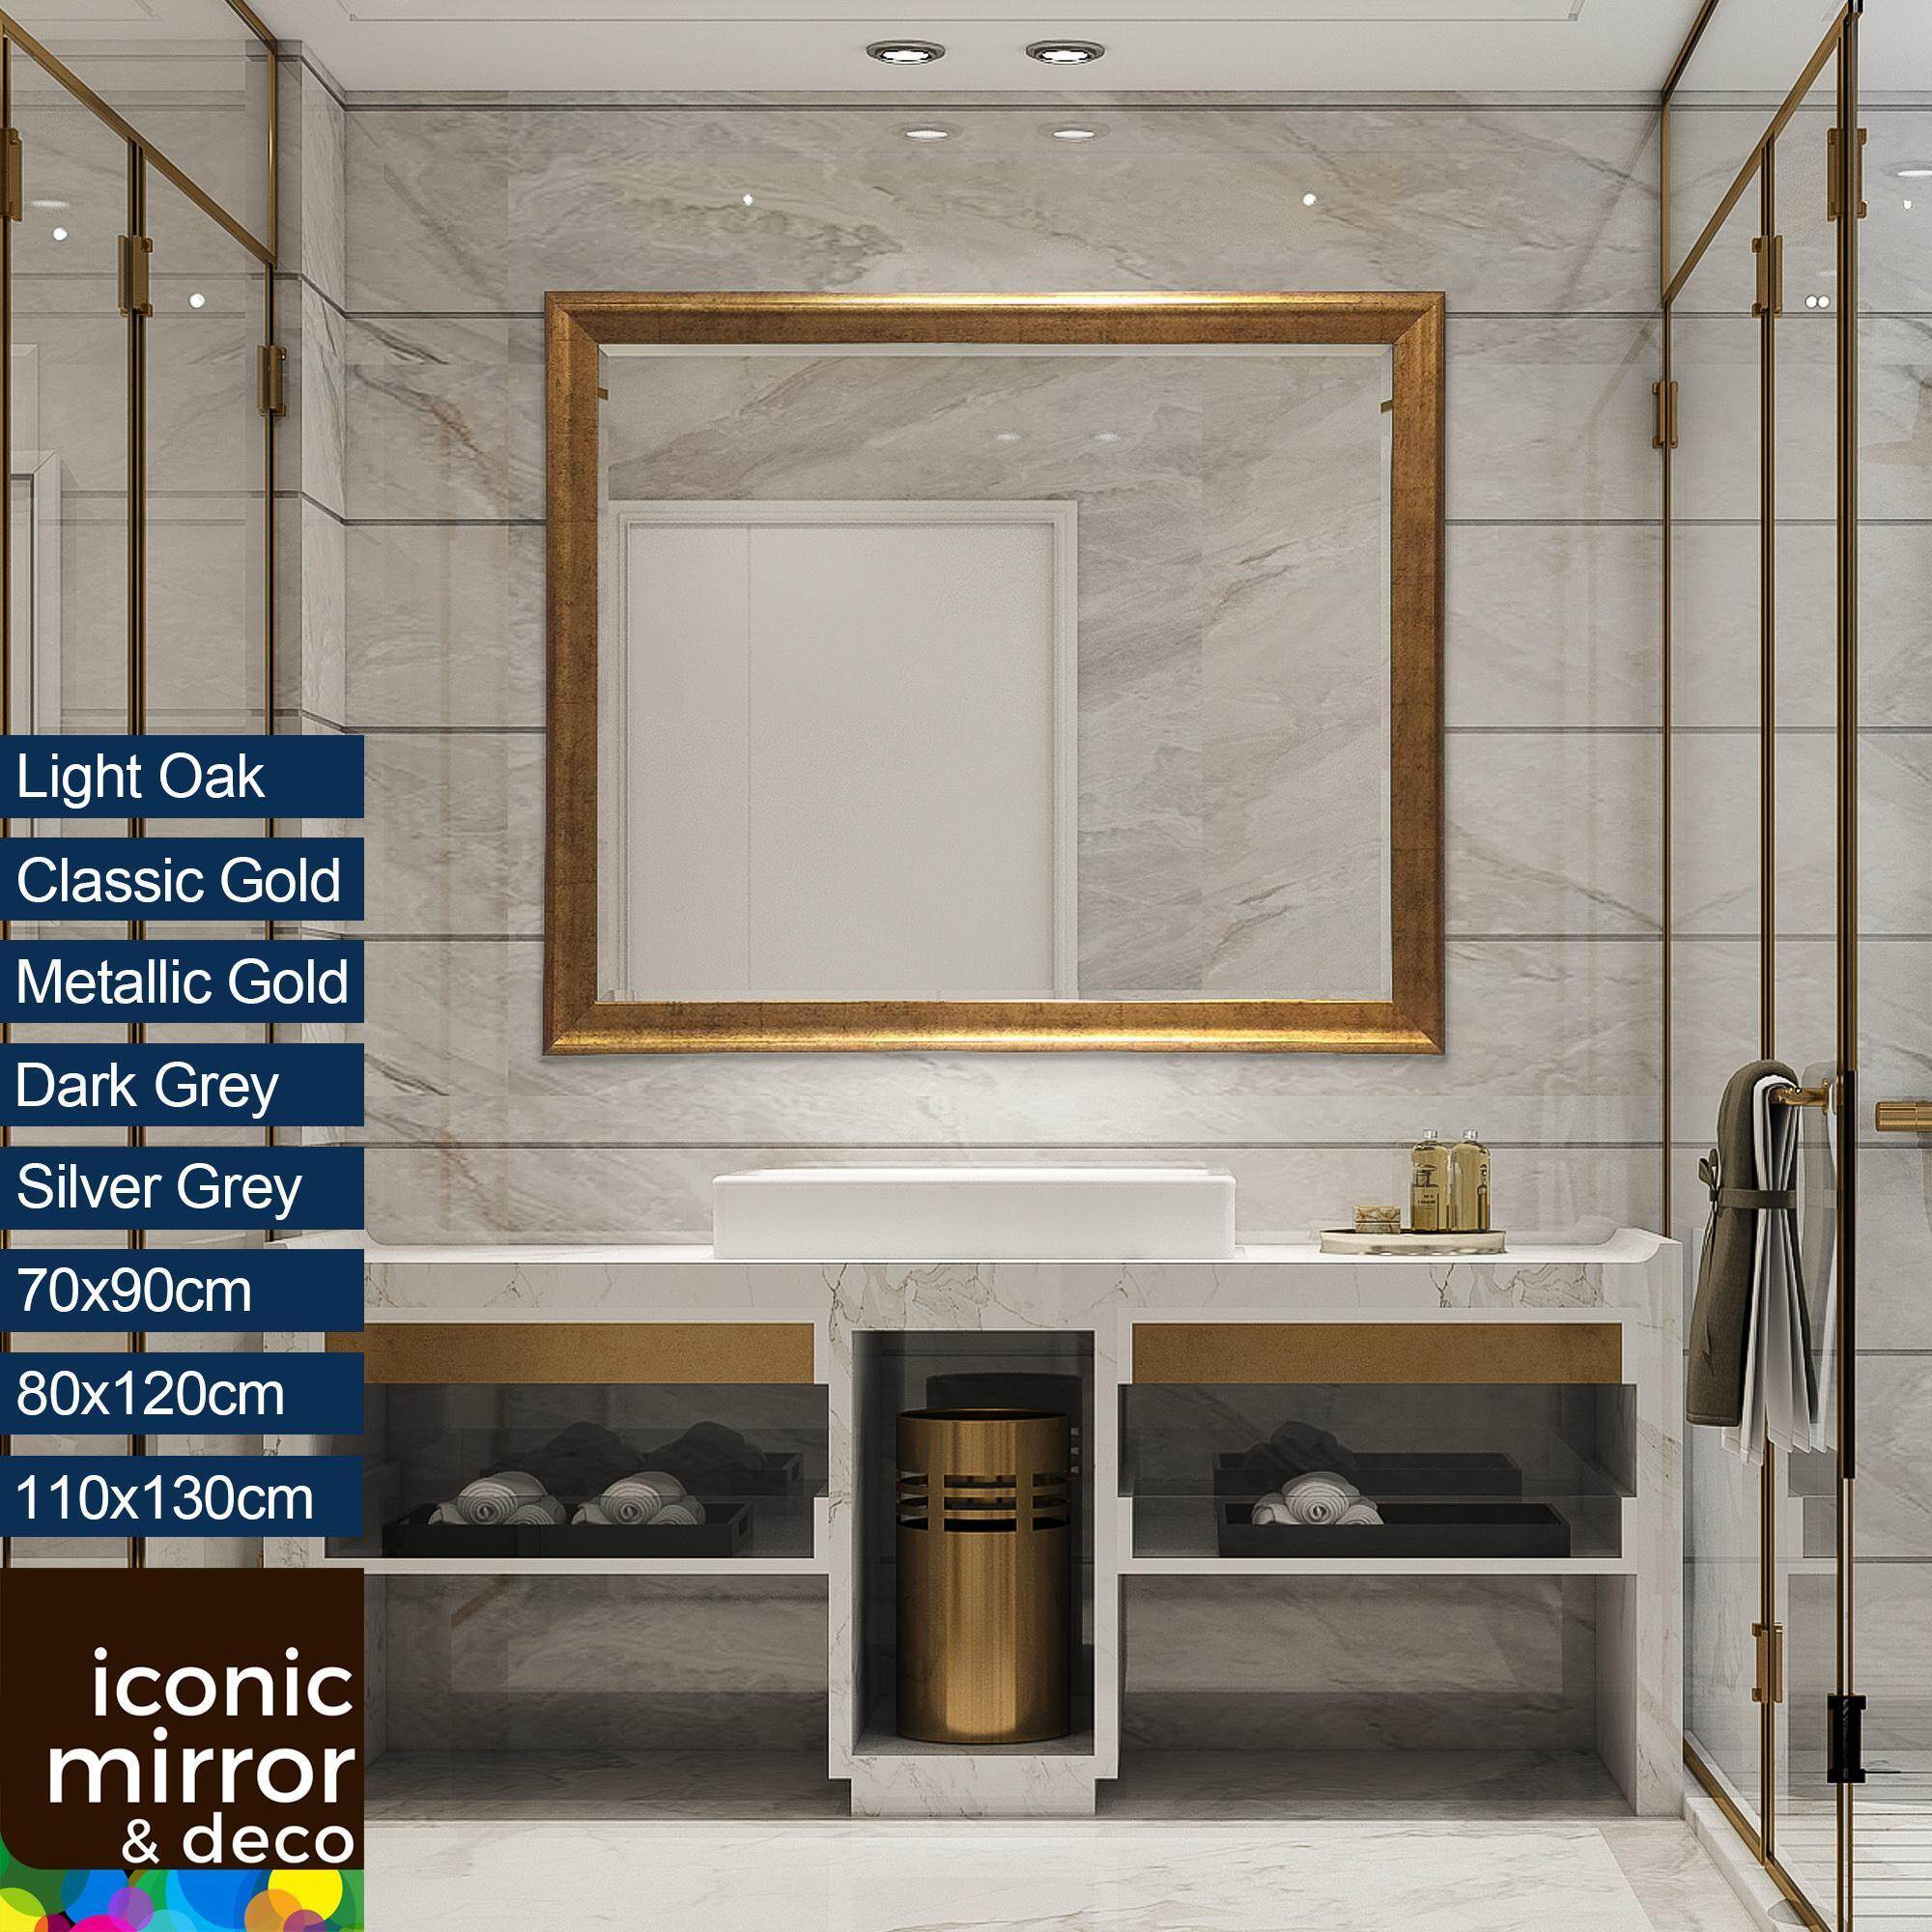 70 130cm Wall Decor Mirror Iconic Mirror M636 Bathroom Wall Stand Side Cermin Hiasan Dinding Toilet Standing Washroom Makeup Big Contemporary Large 5mm Beveled Edge Full Length Long Real Mounted 70cm 80cm